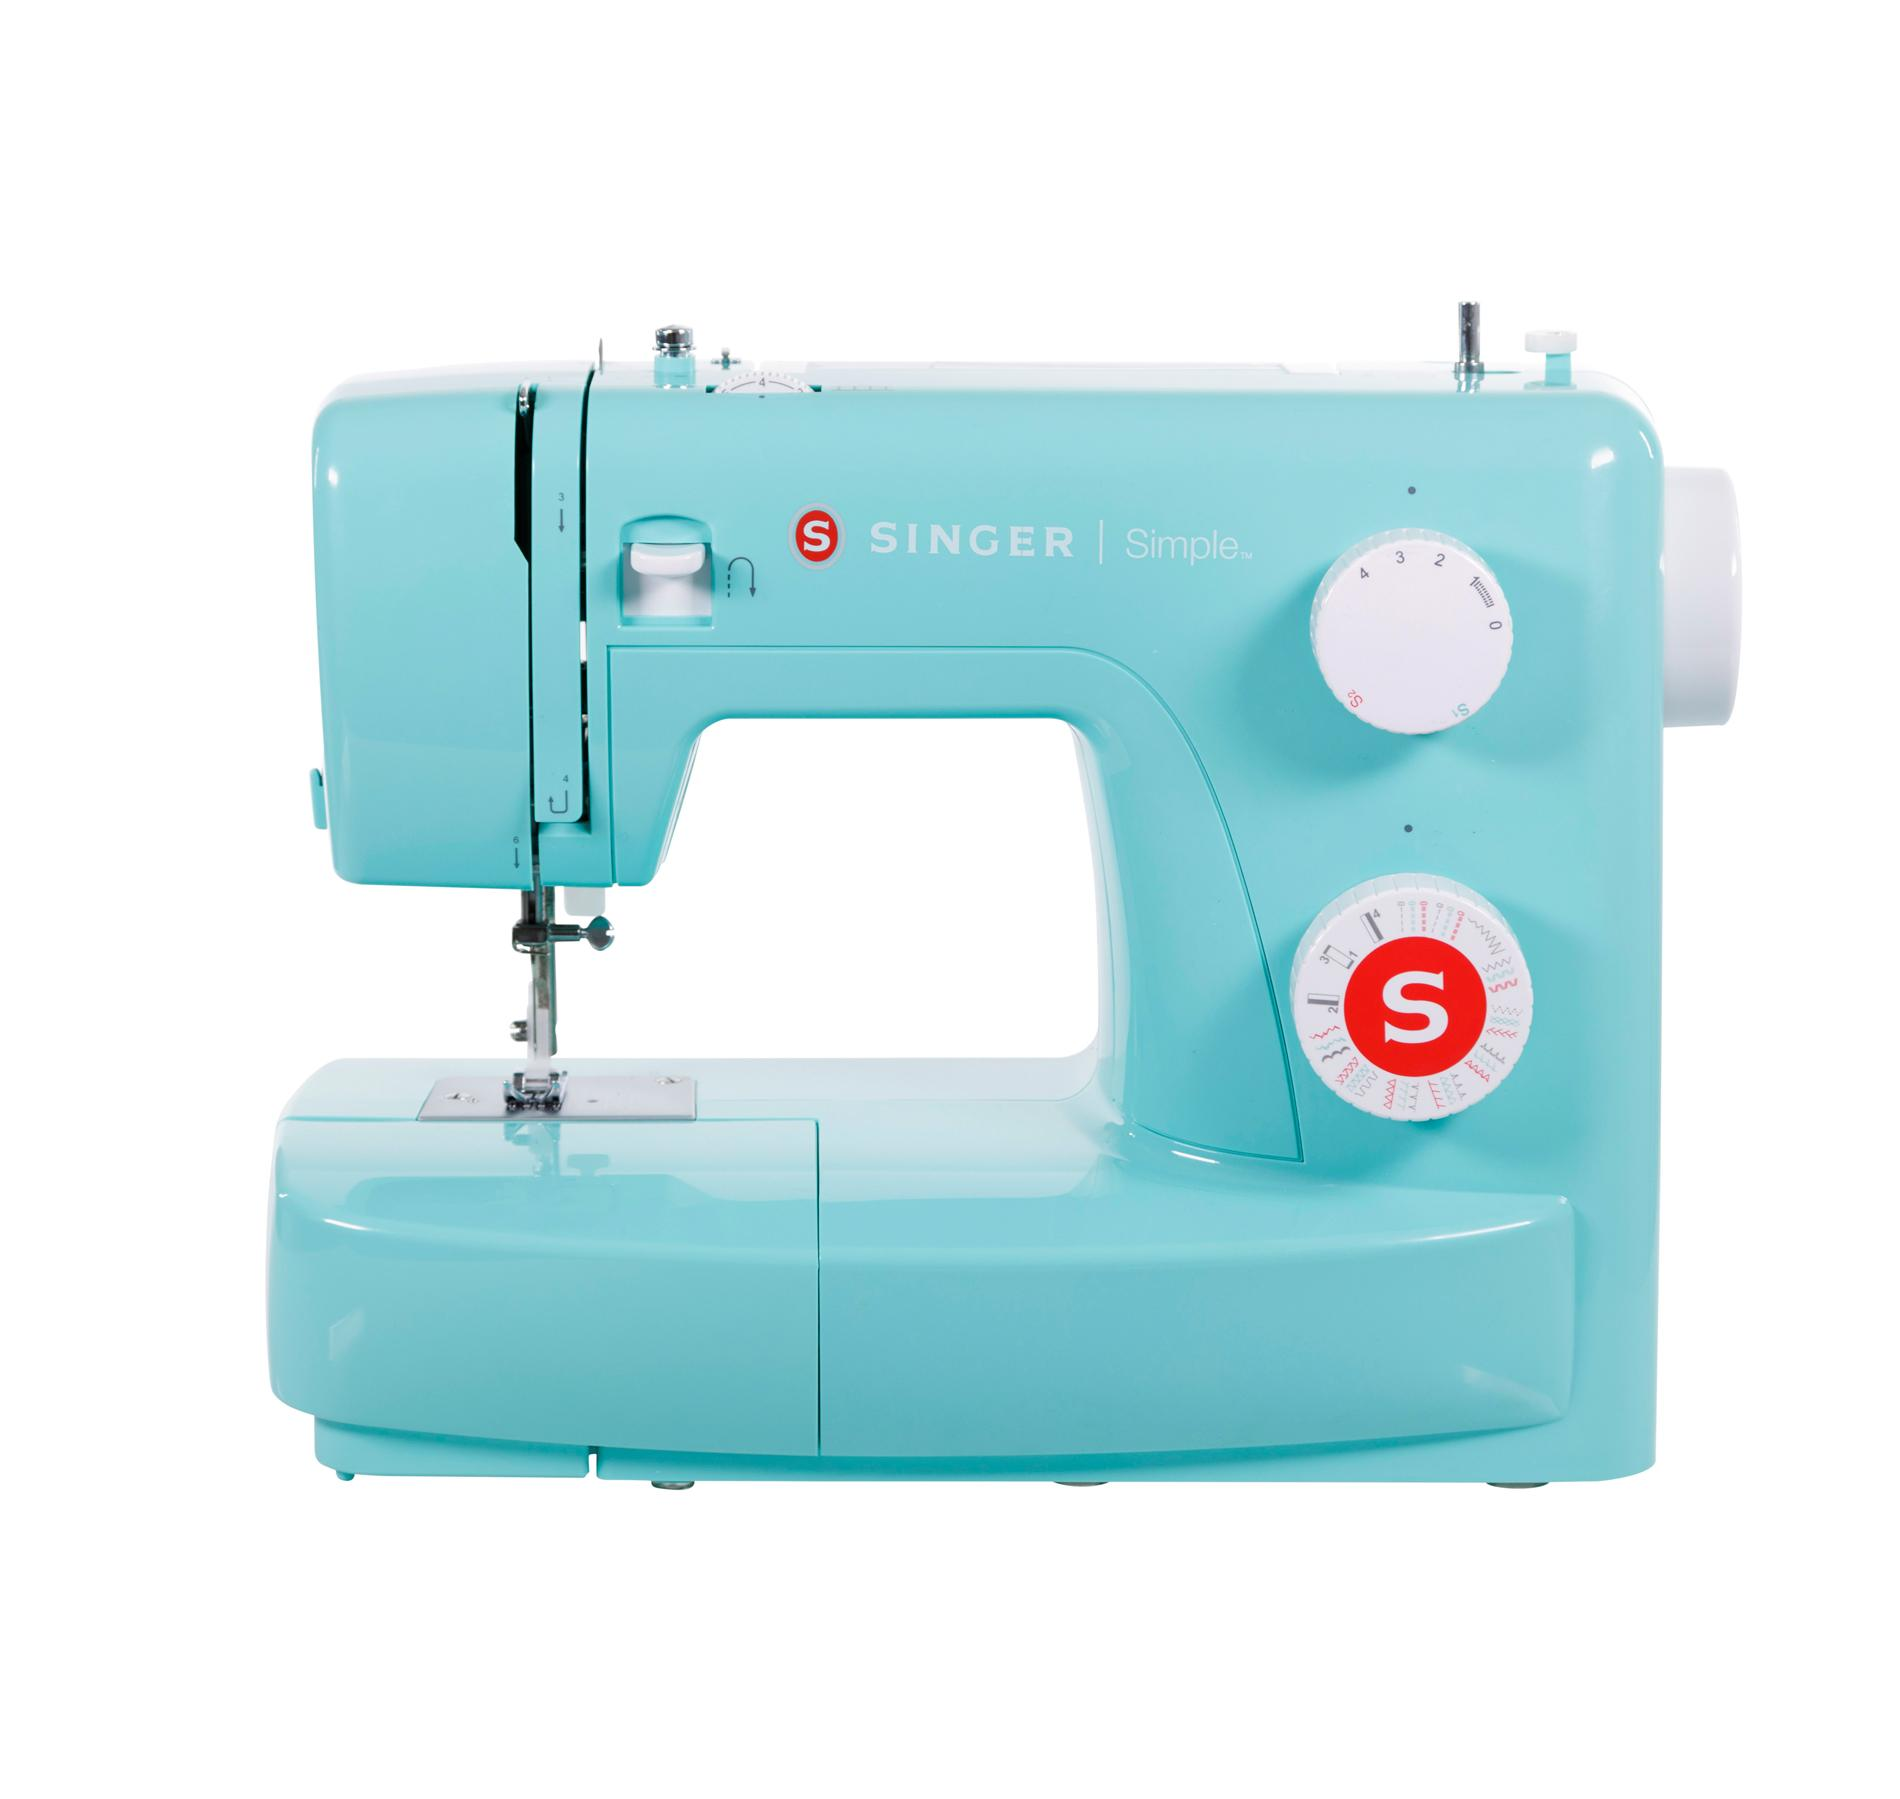 Singer 3223 Green Portable Sewing Machine with 23 stitches.